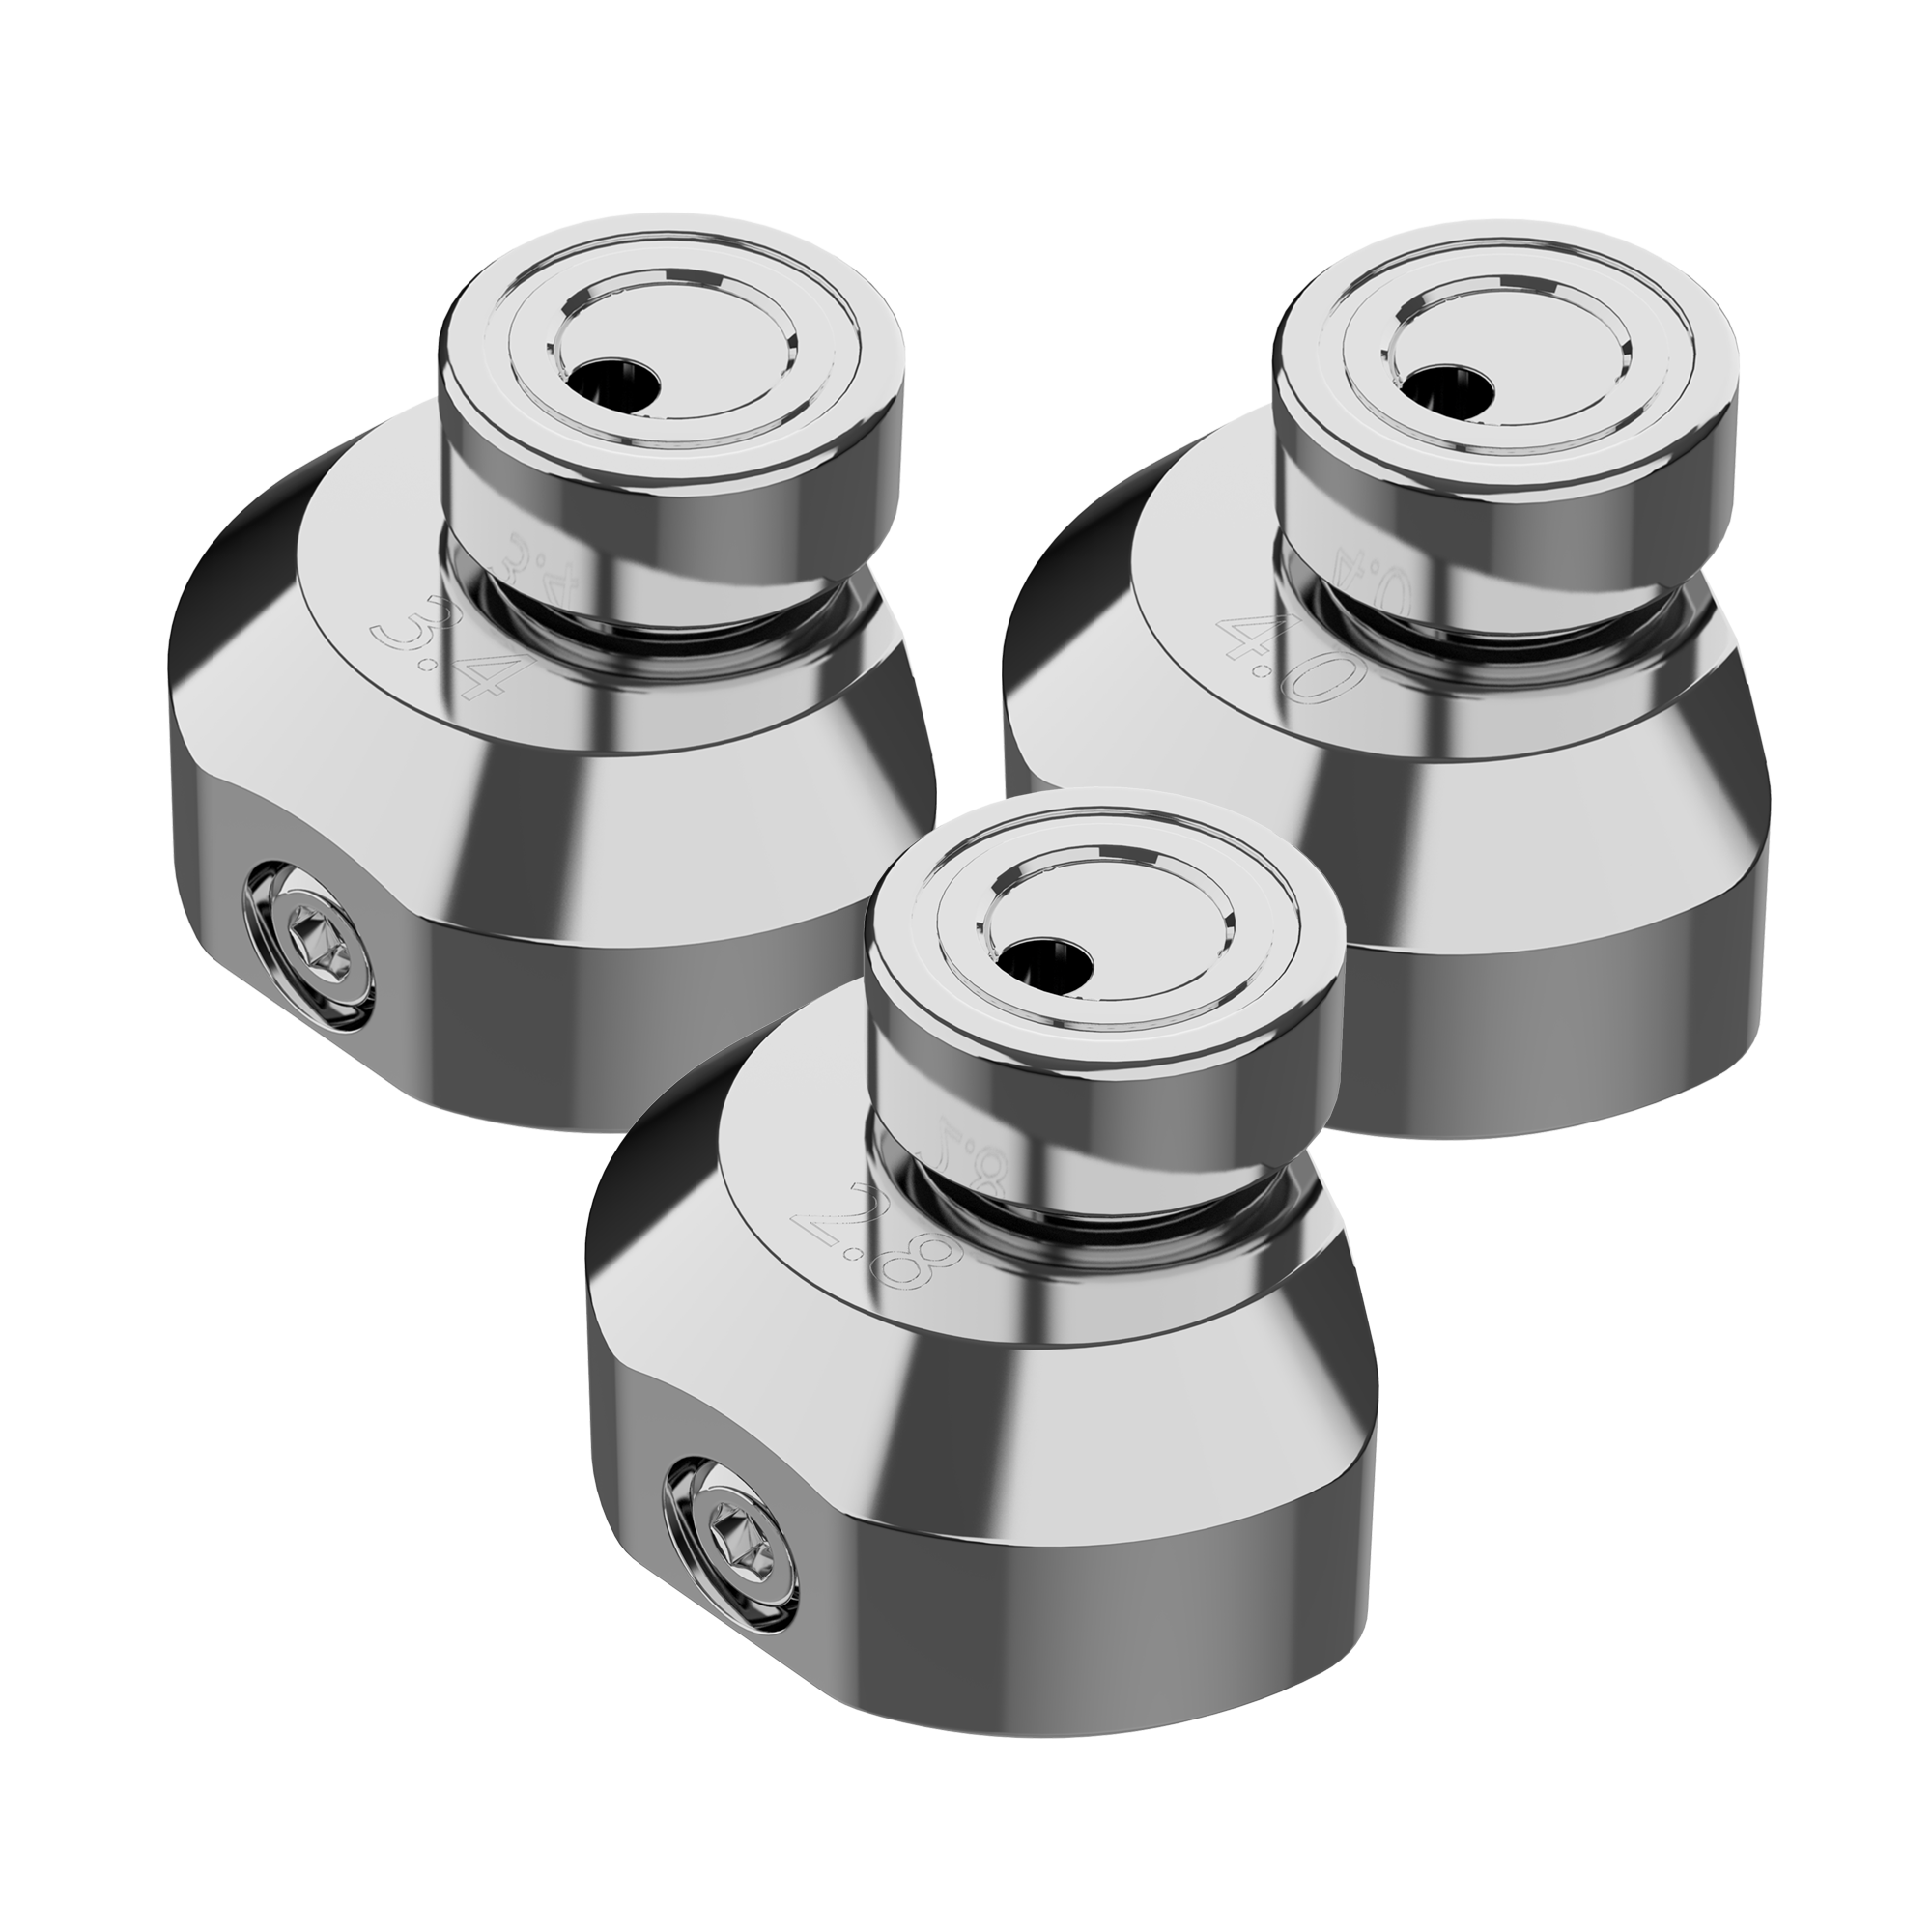 Halo 2 Stroke Wheel Kit - 3 Pack